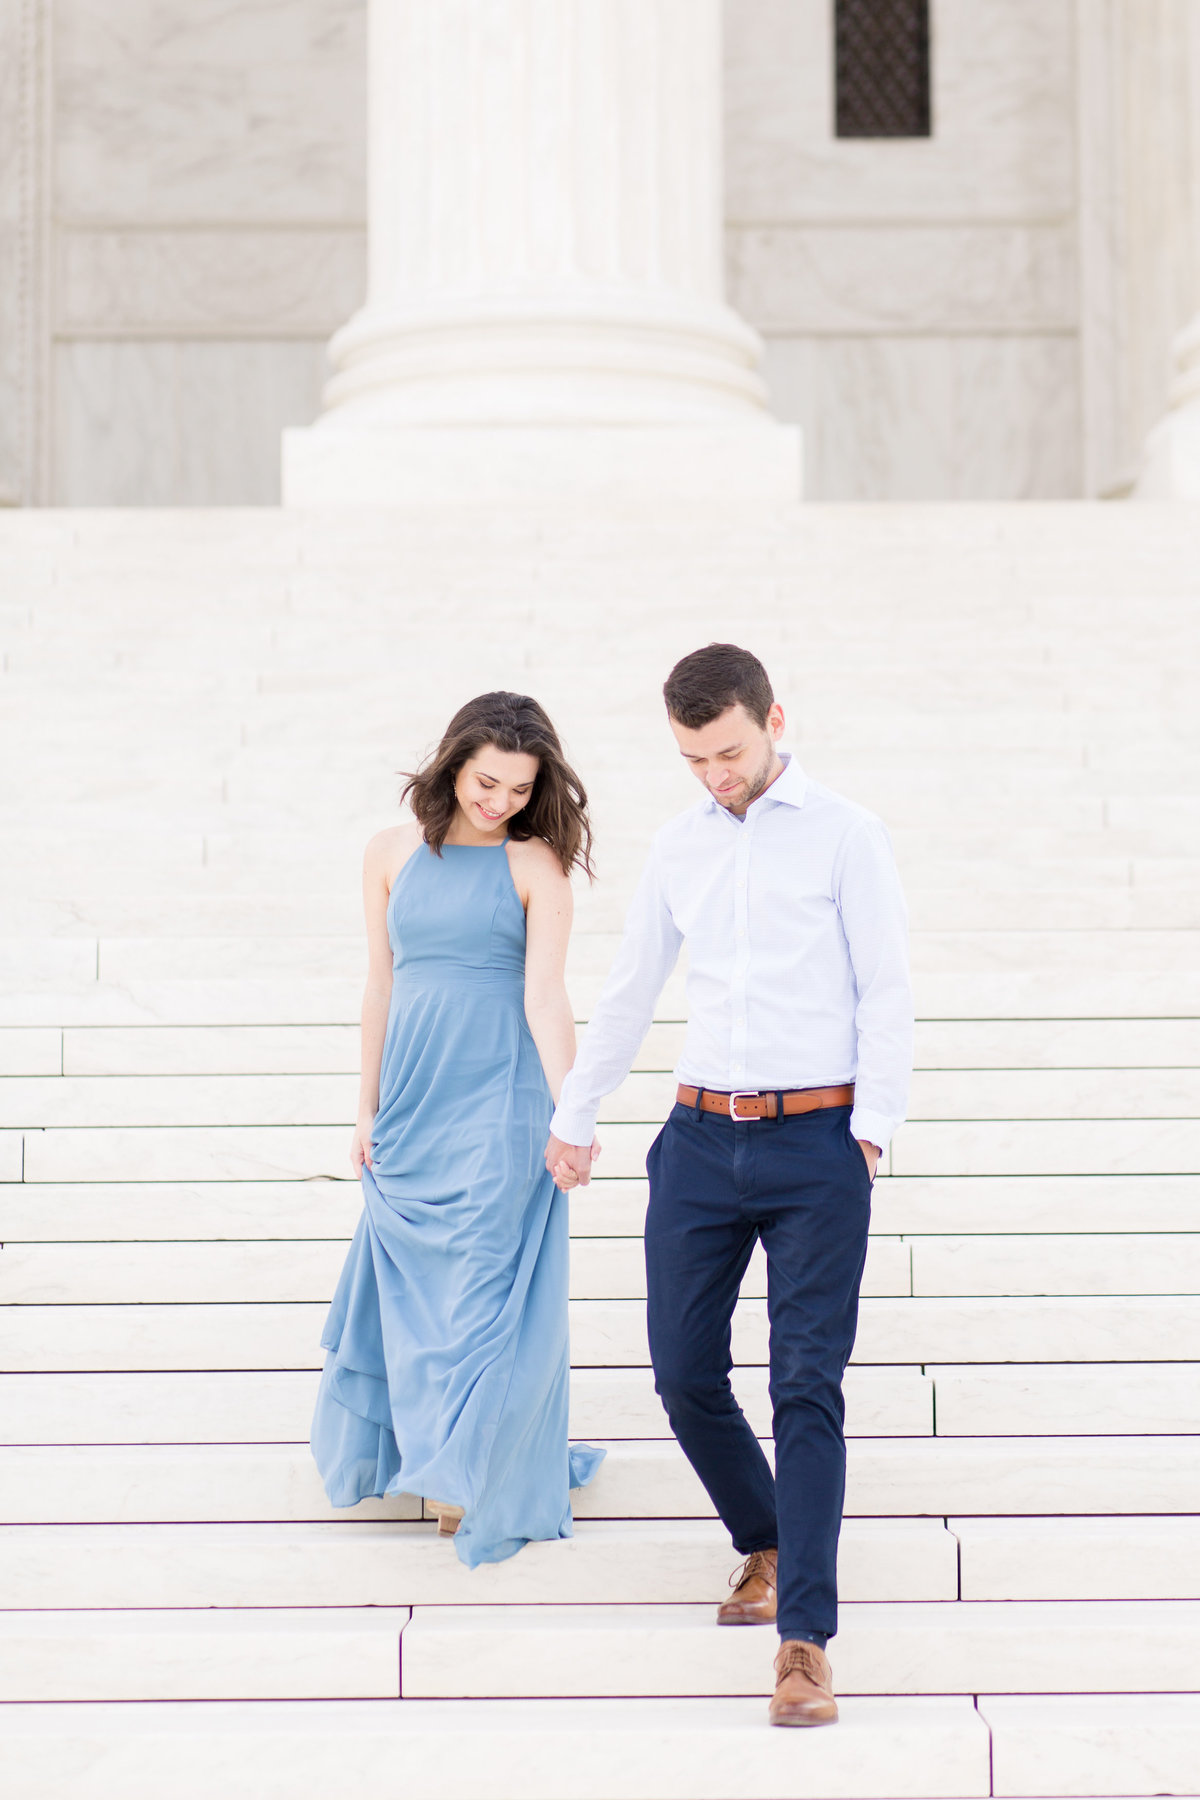 Capitol Building Engagement Session in DC with a visit to Supreme Court Building and Library of Congress | DC Wedding Photographer | Taylor Rose Photography-36